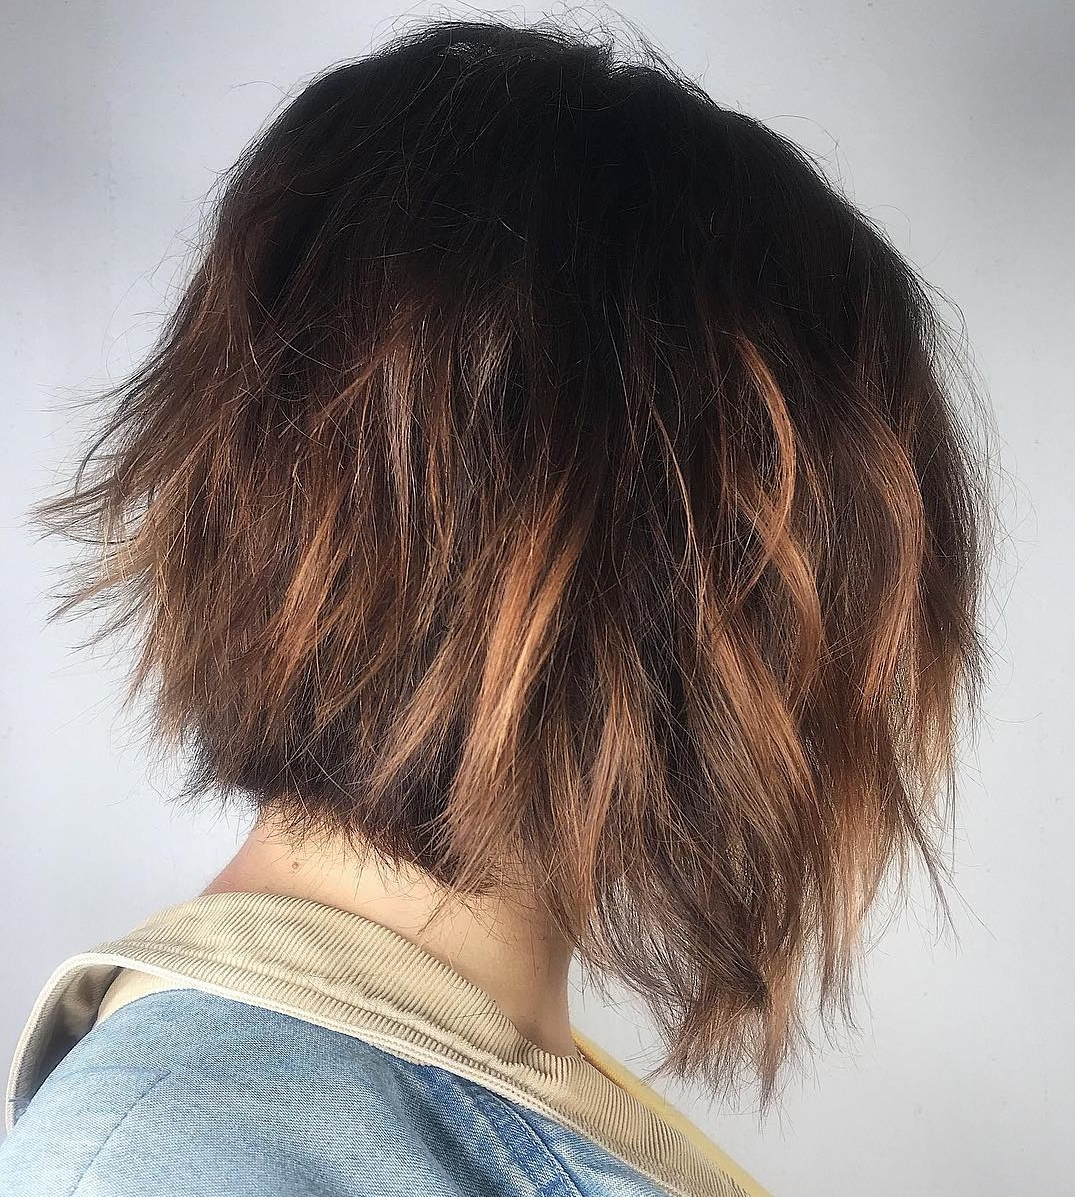 45 Short Hairstyles For Fine Hair To Rock In 2019 Throughout Best And Newest Pretty Shaggy Brunette Bob Hairstyles (View 16 of 20)